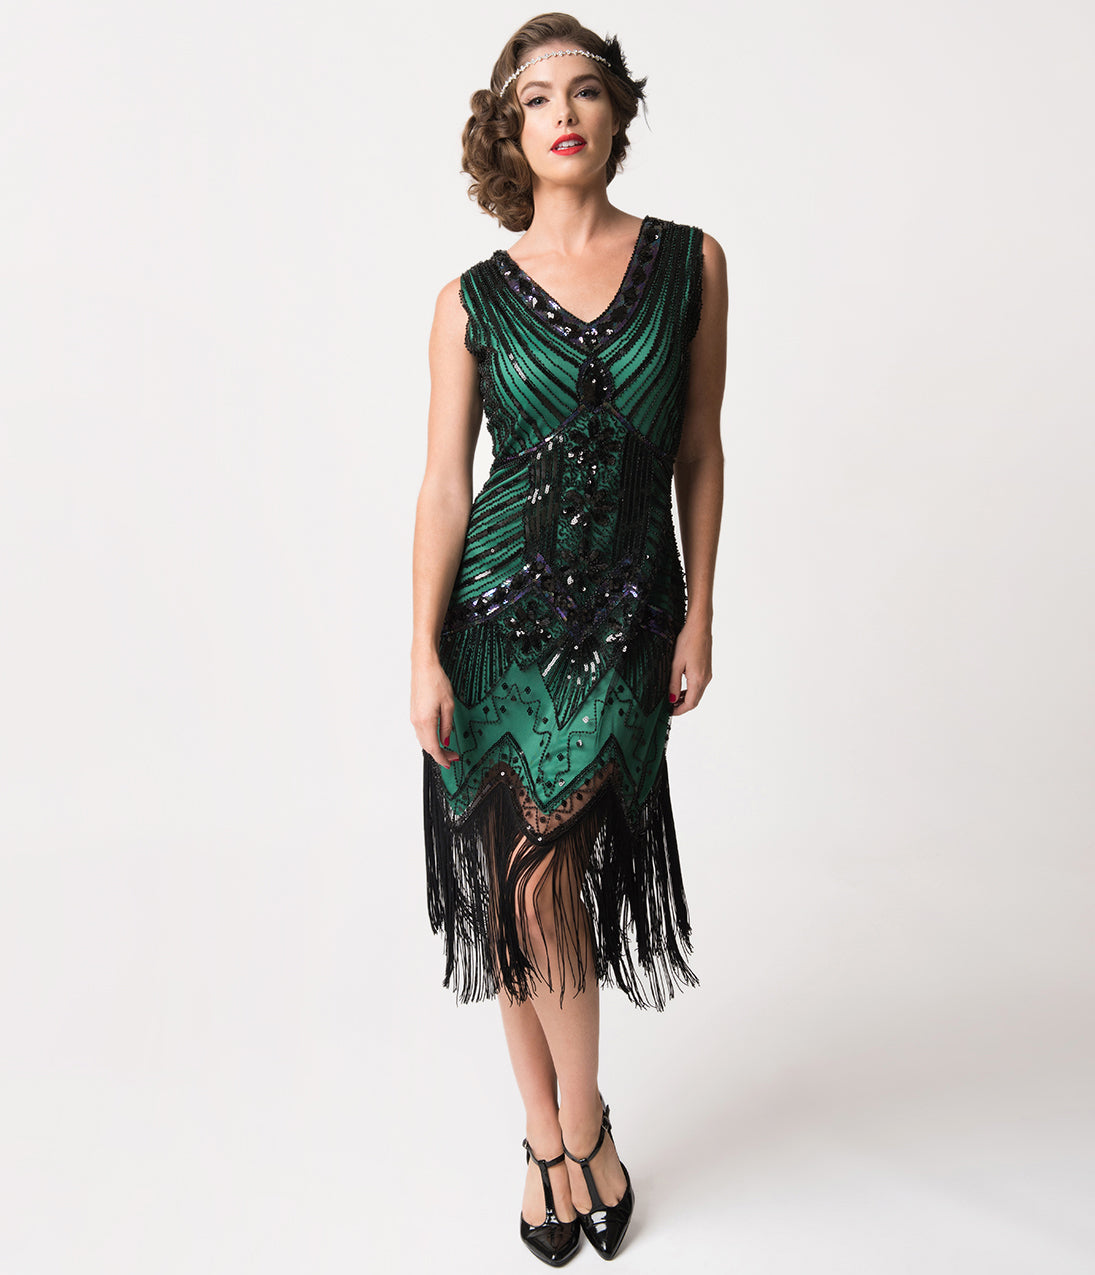 1920s Costumes: Flapper, Great Gatsby, Gangster Girl Unique Vintage 1920S Deco Green  Black Sequin Veronique Fringe Flapper Dress $98.00 AT vintagedancer.com